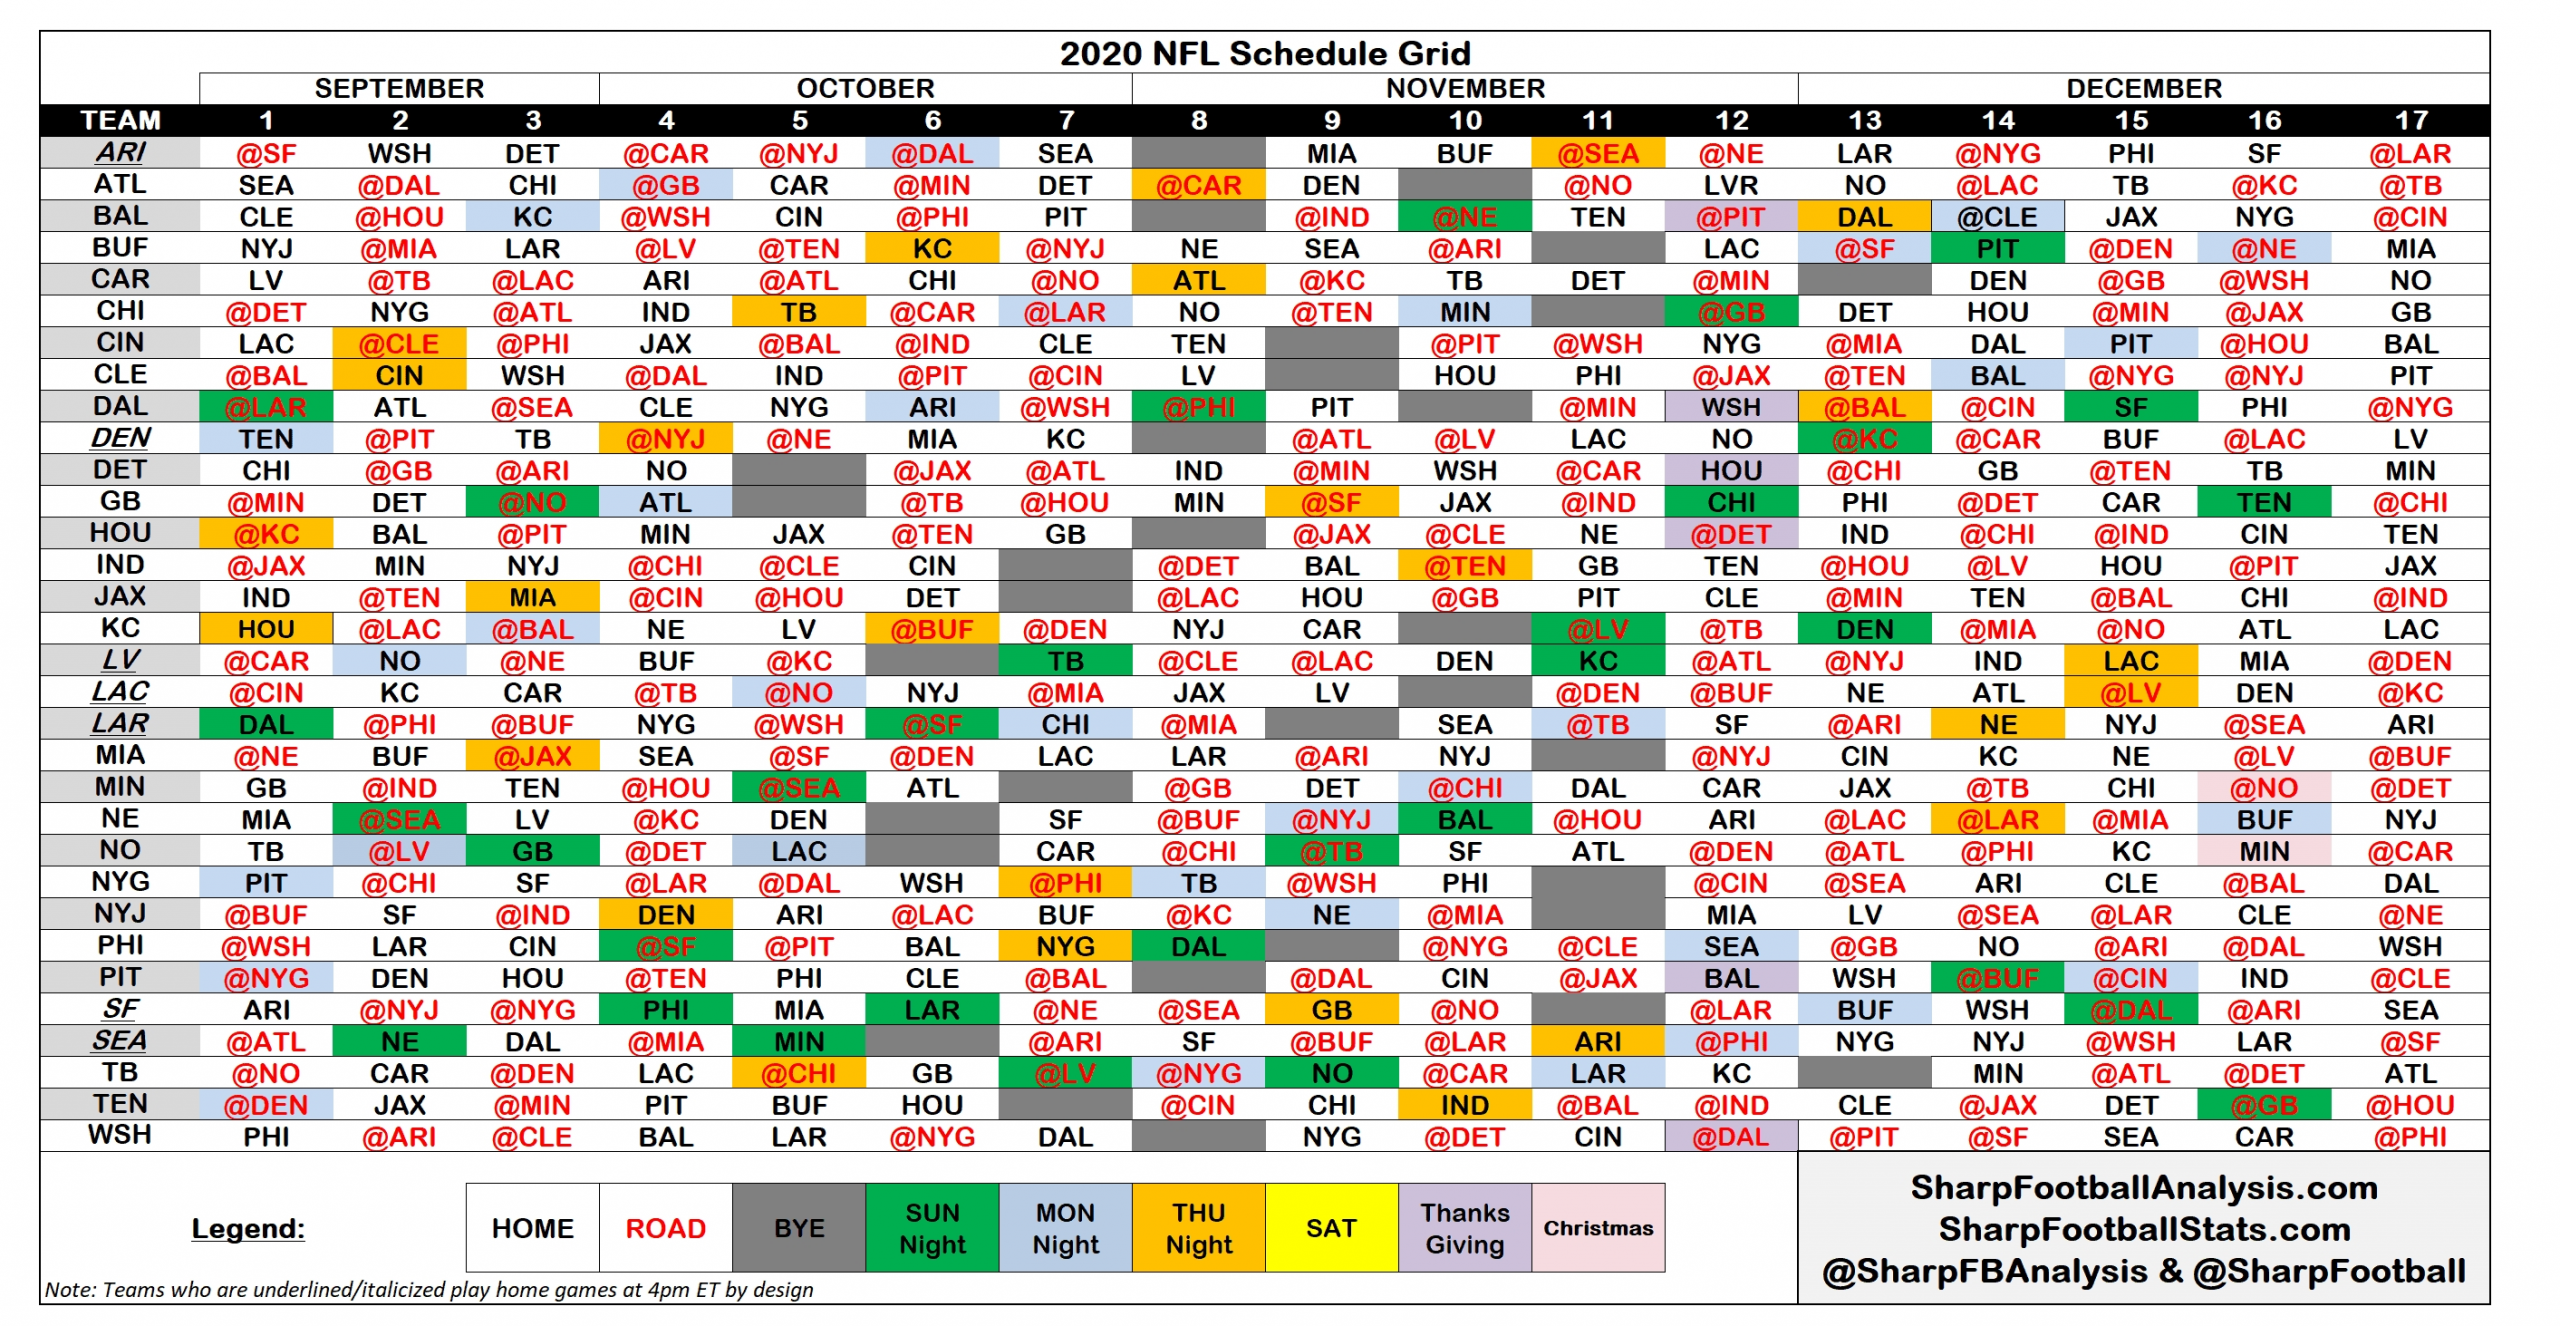 2020 Nfl Regular Season Schedule Grid & Strength Of Schedule